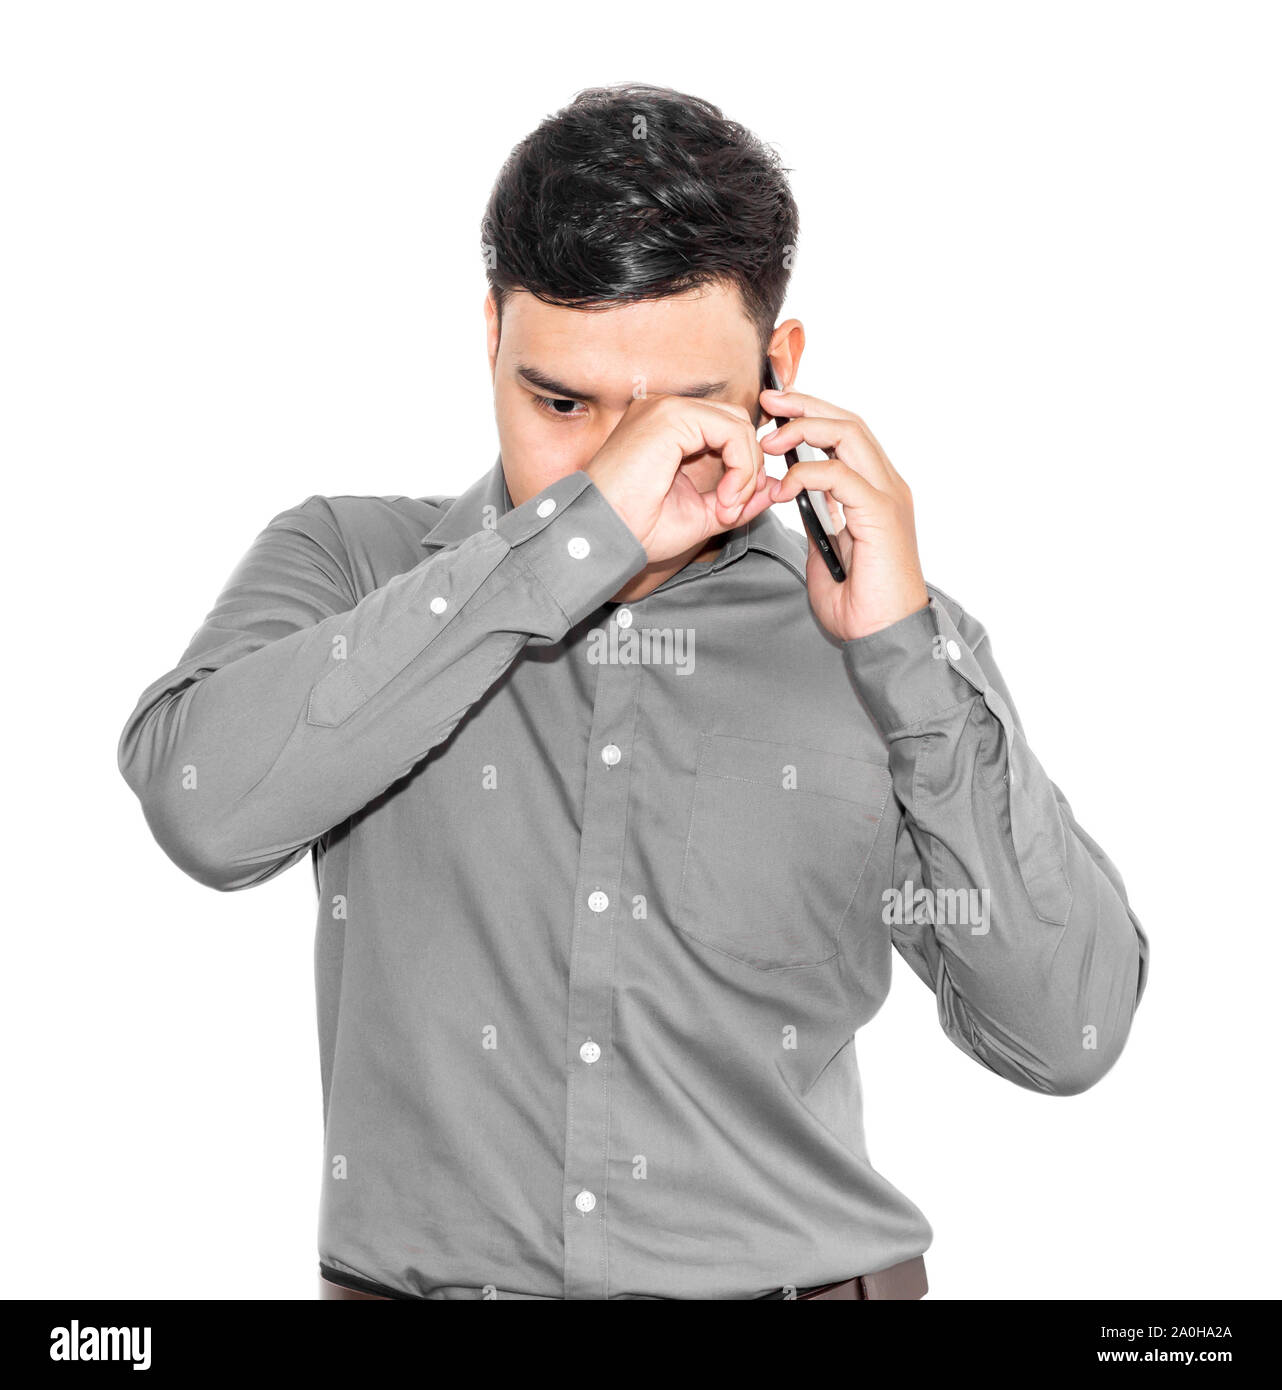 Thai man in a gray shirt is talking on the phone and is sad. Stock Photo